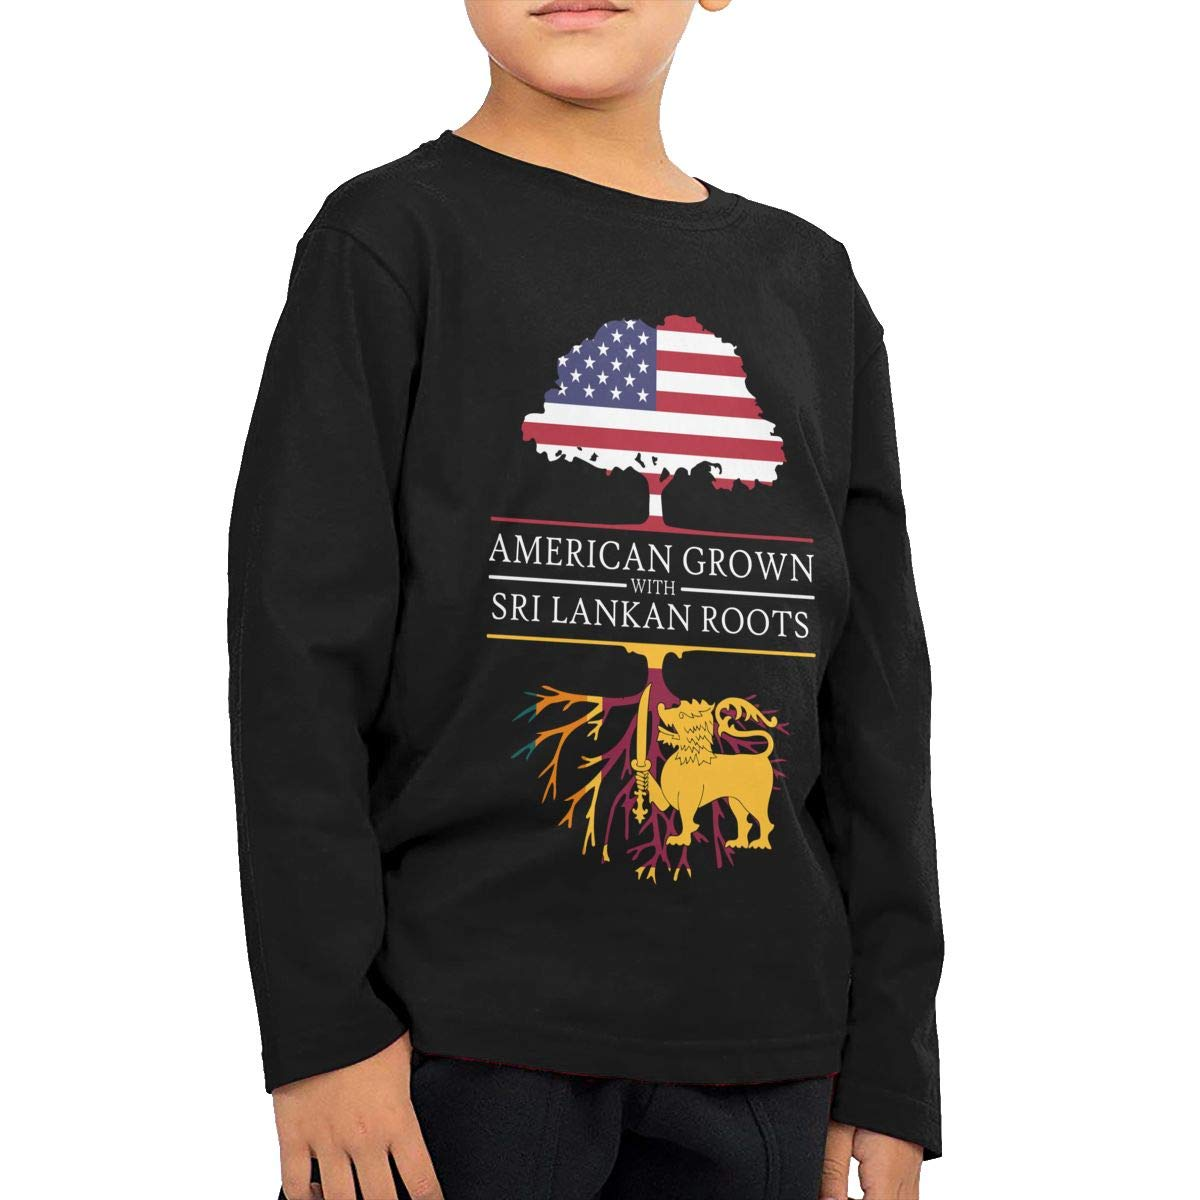 American Grown with Sri Lankan Roots Kids Boys Girls Crew Neck Long Sleeve Shirt T-Shirt for Toddlers